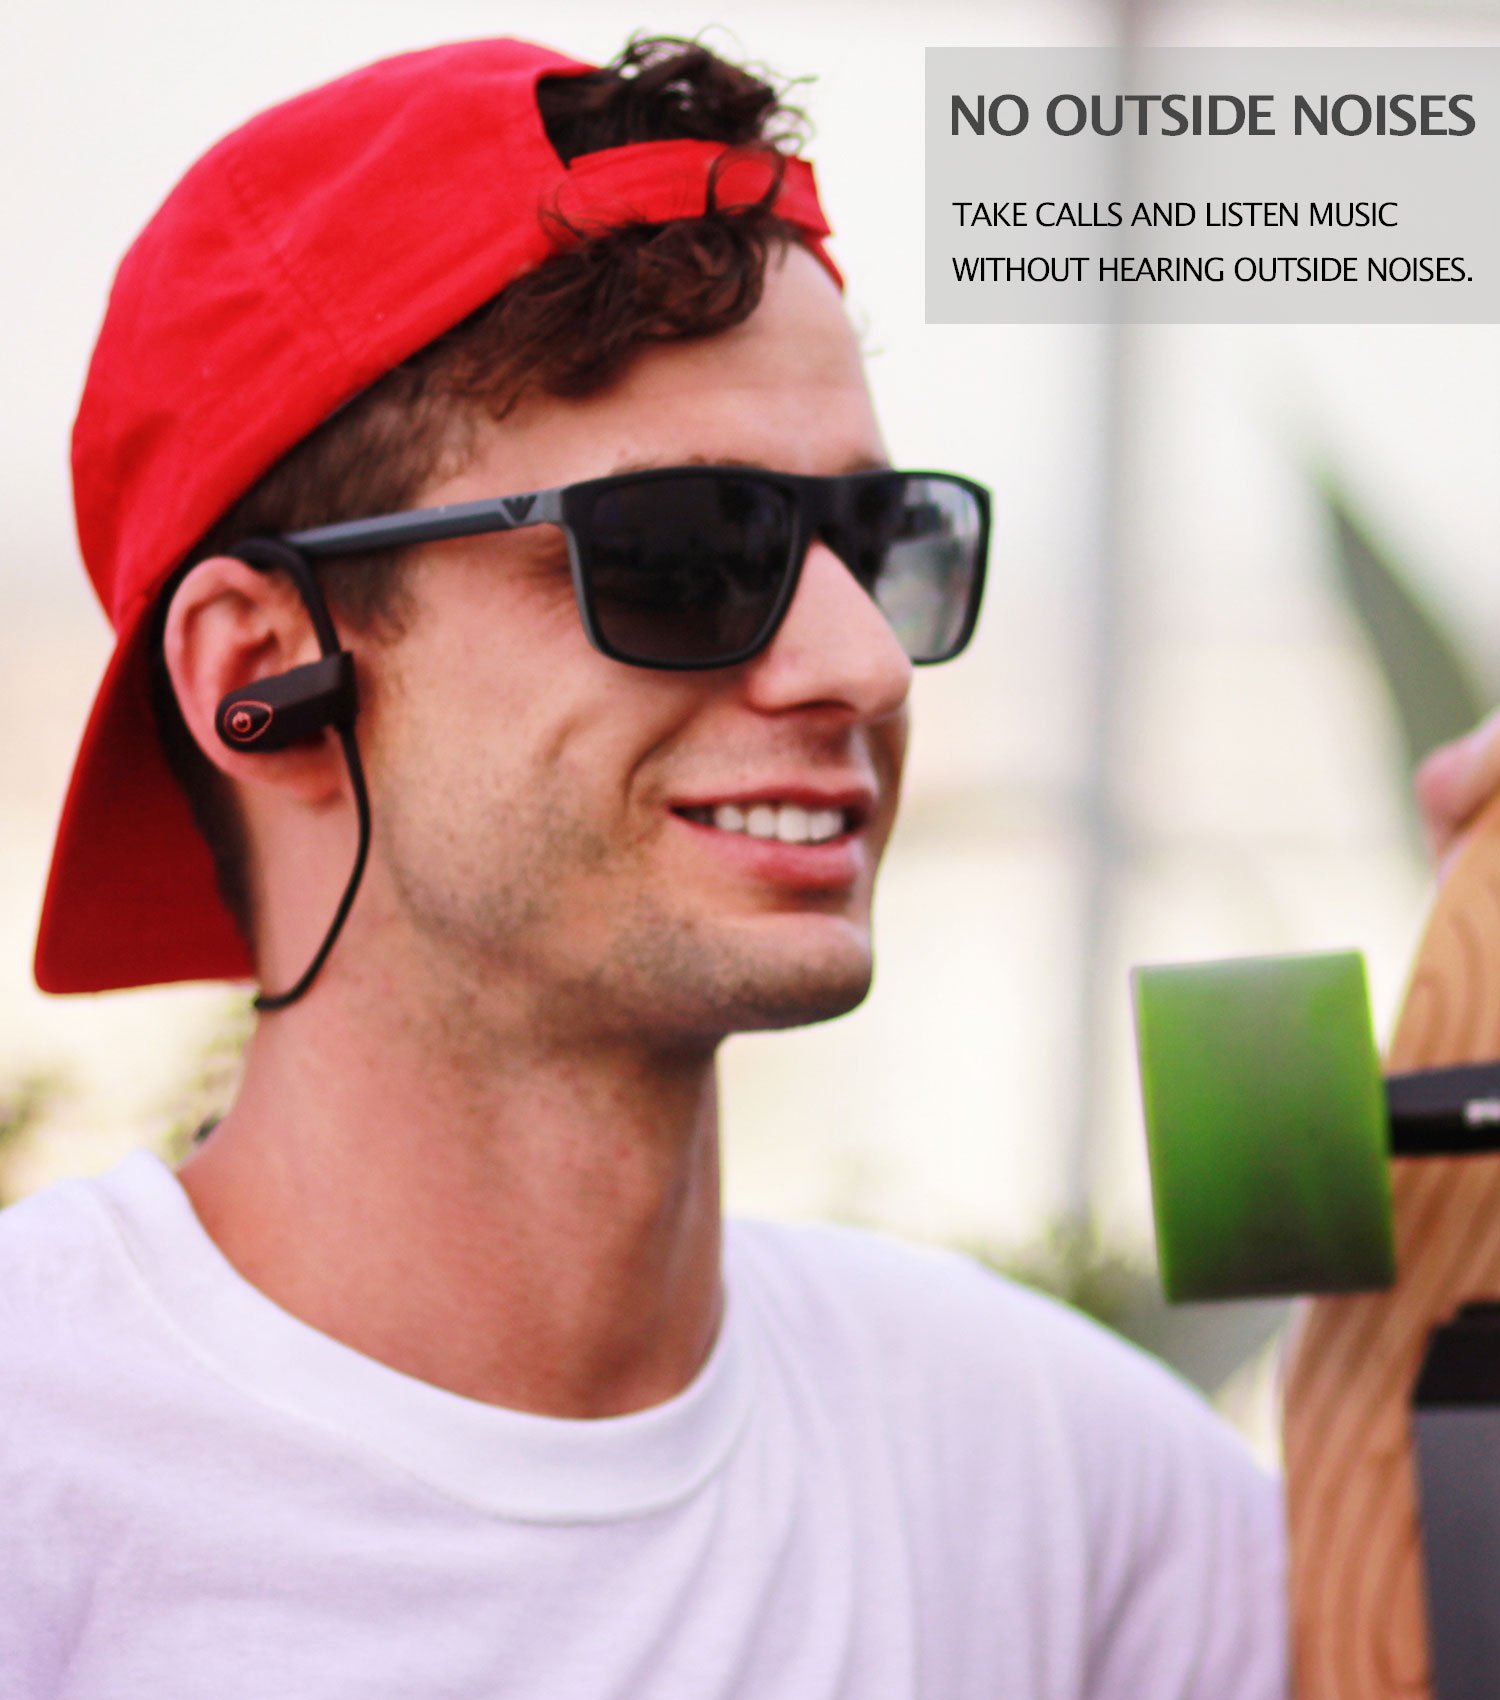 ONE DAY SALE!! - MX10 Bluetooth Iphone Headphones - Ear Buds Wireless Headphones - Designed For Running and Sport Workouts - Built-in Microphone With Noise Cancellation - IPX7 WaterProof by MultiTed (Image #6)